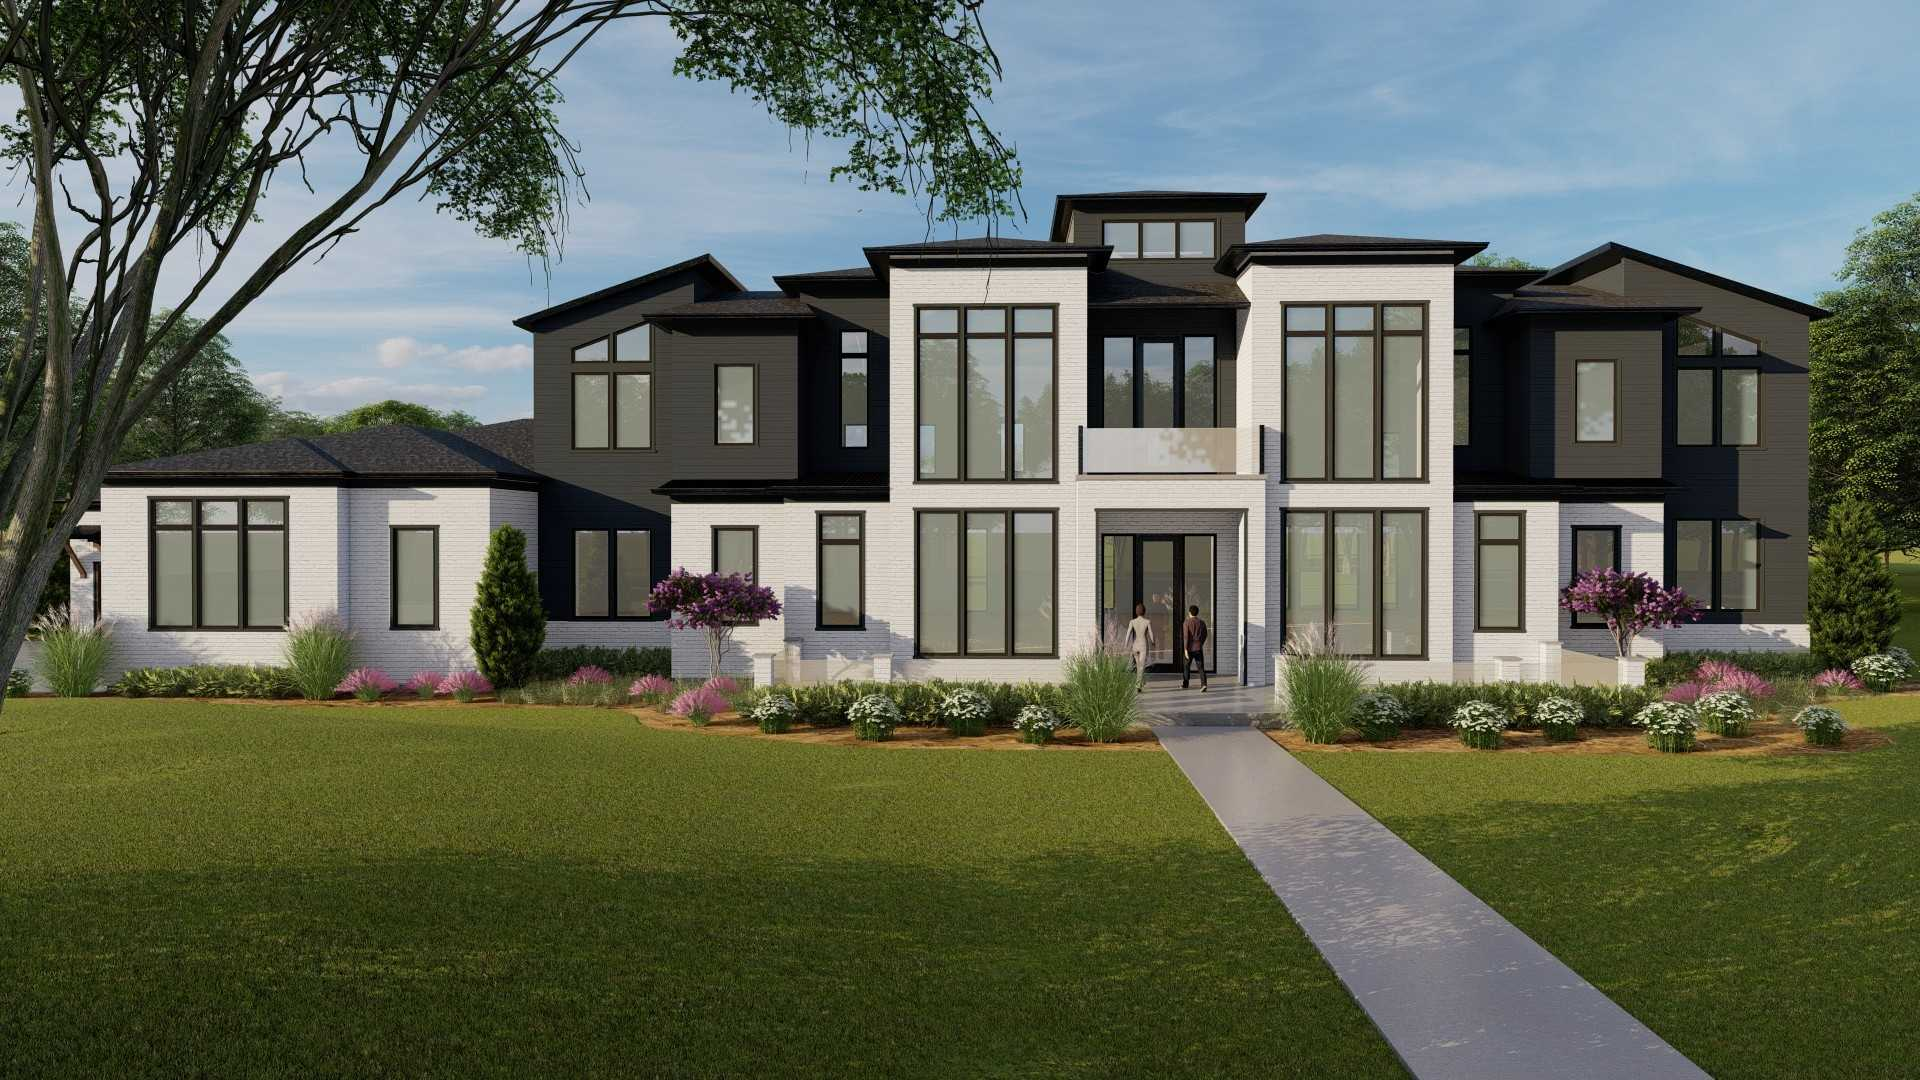 $5,750,000 - 6Br/8Ba -  for Sale in Brentwood Hills Sec 4, Brentwood